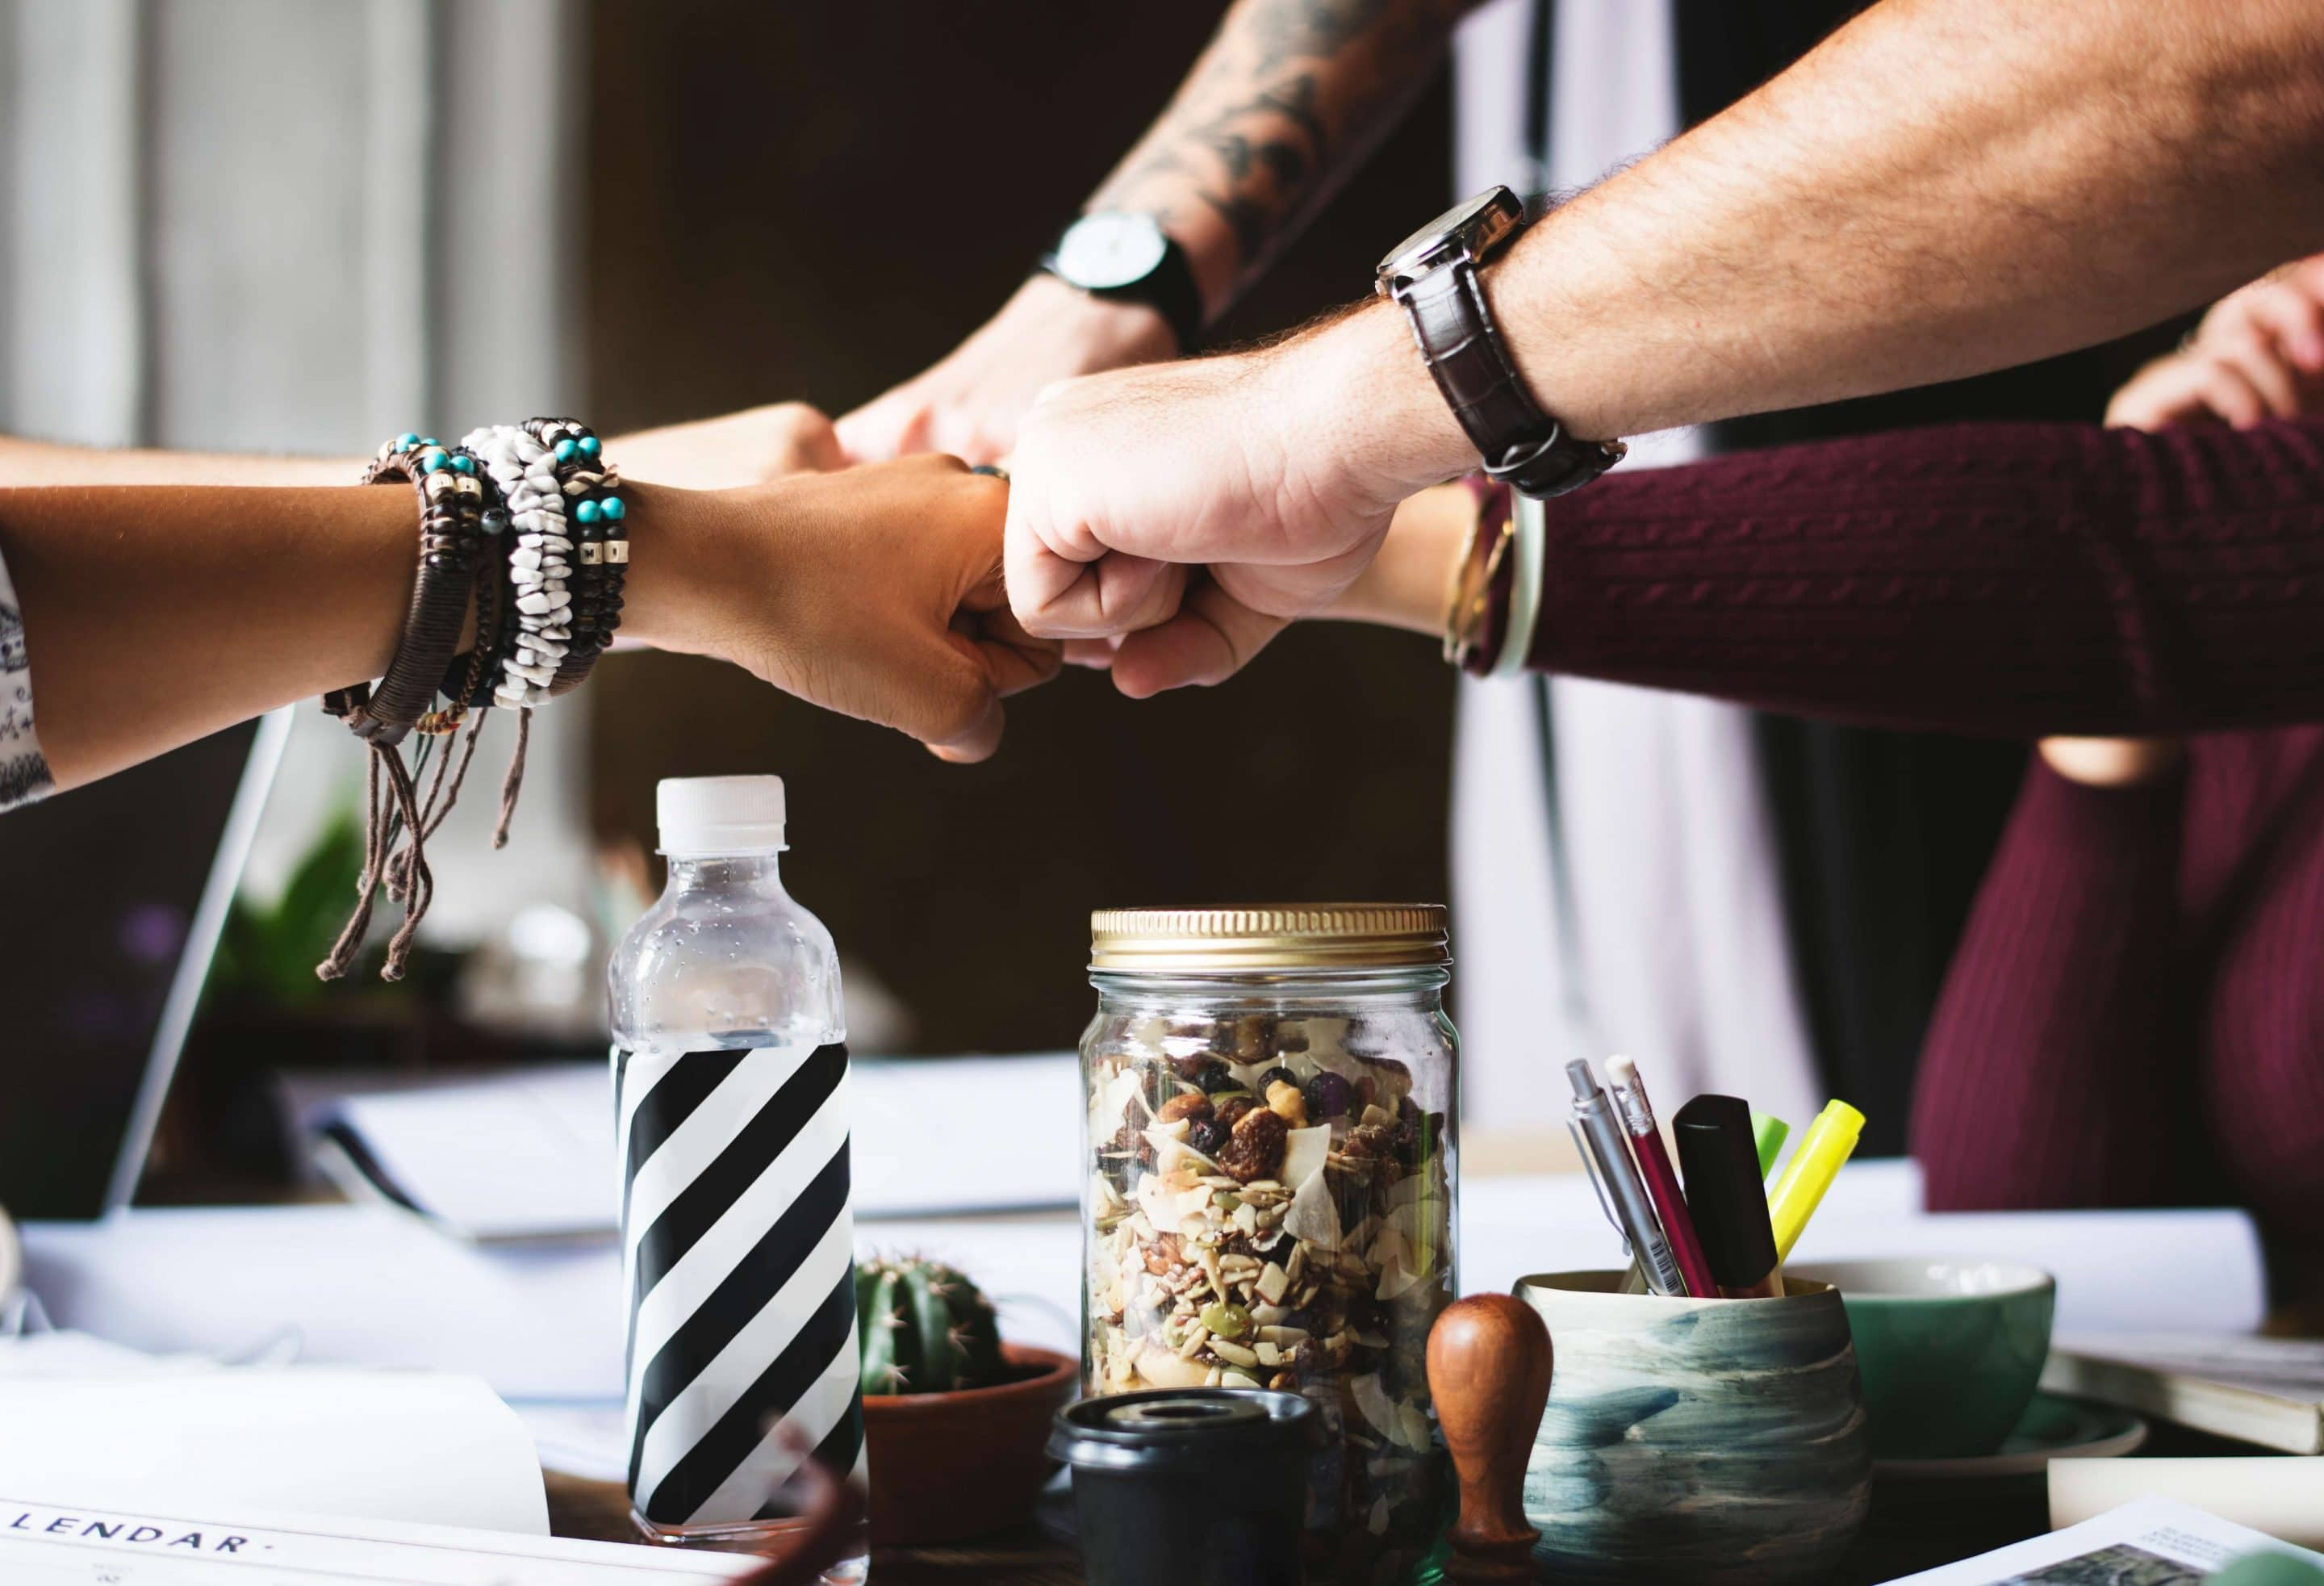 7 Tips to Keep Your Team Motivated